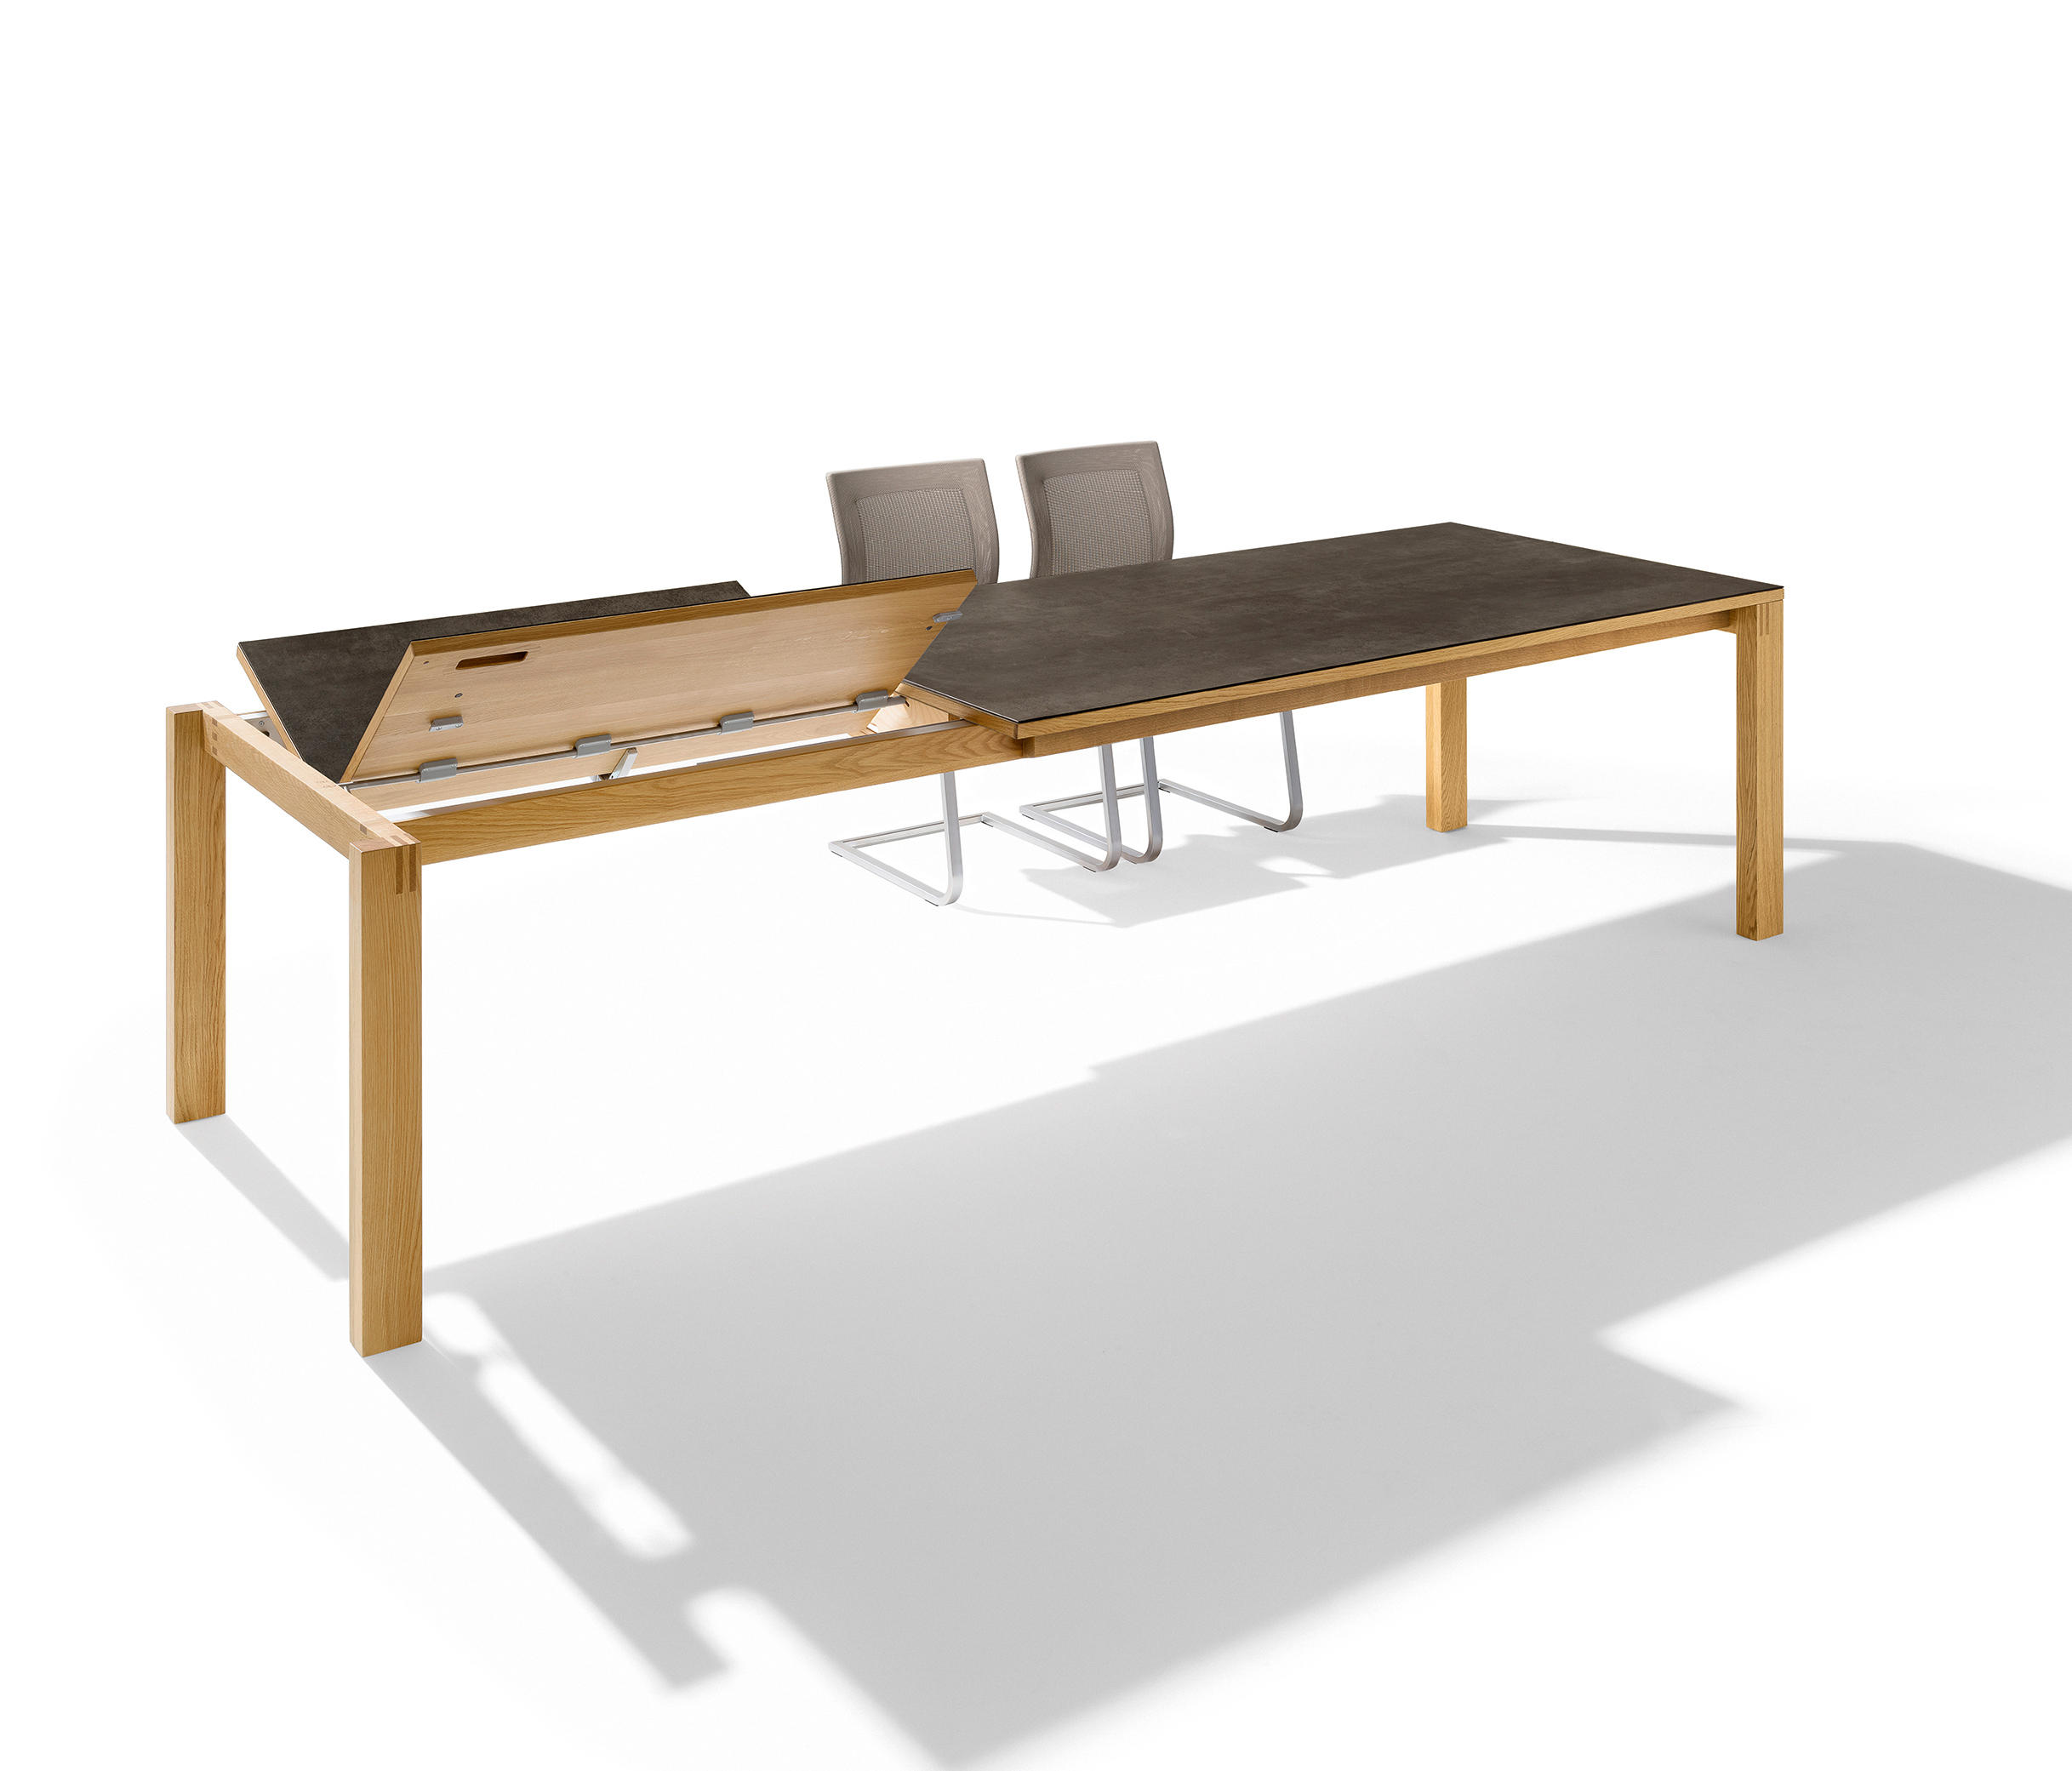 Magnum Extension Table By TEAM 7